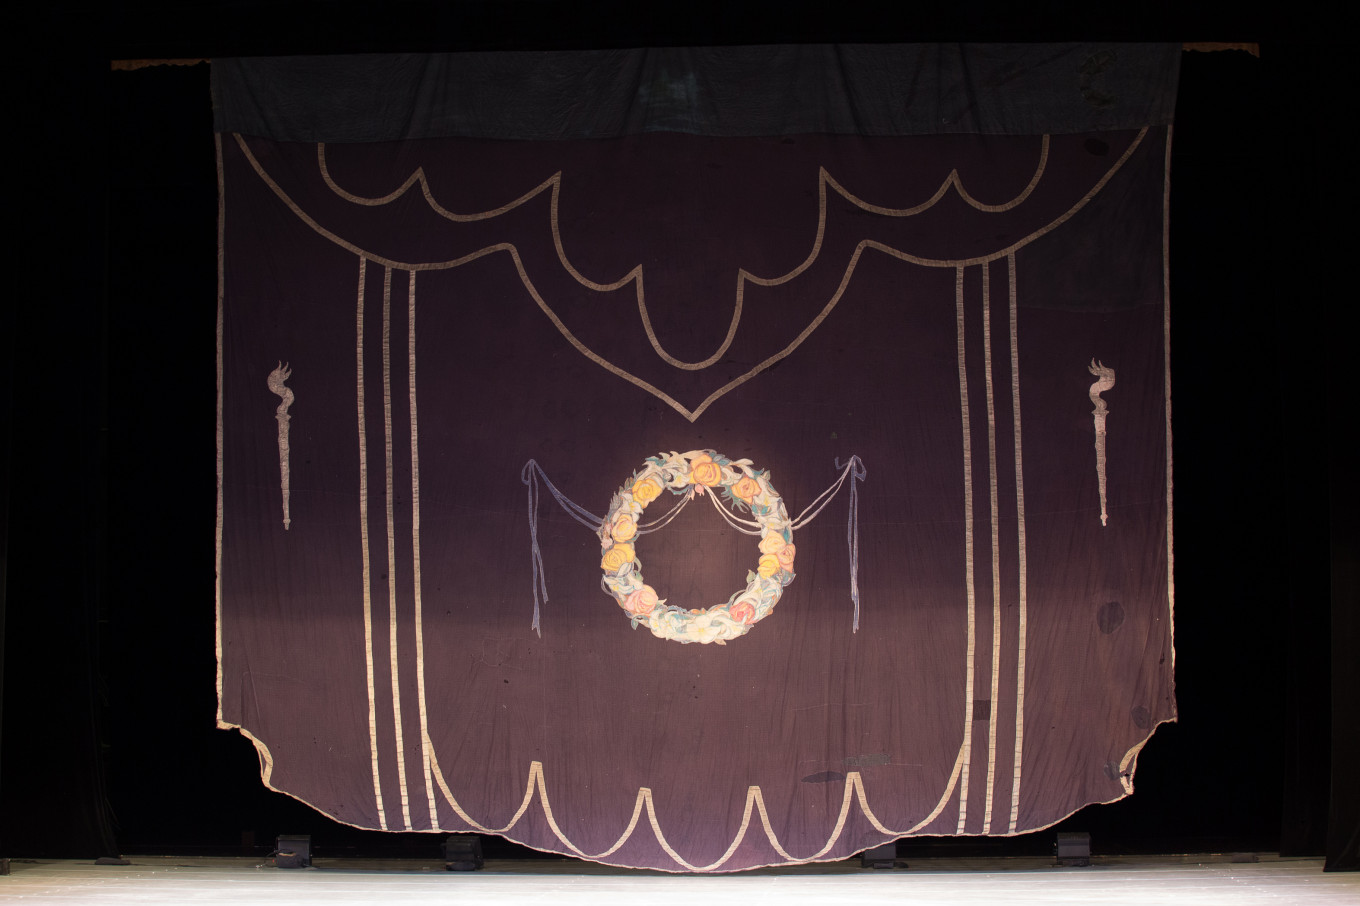 """The original """"mourning curtain"""" from the 1917 production. Photo permission provided by the press service of Alexandrinsky Theater."""